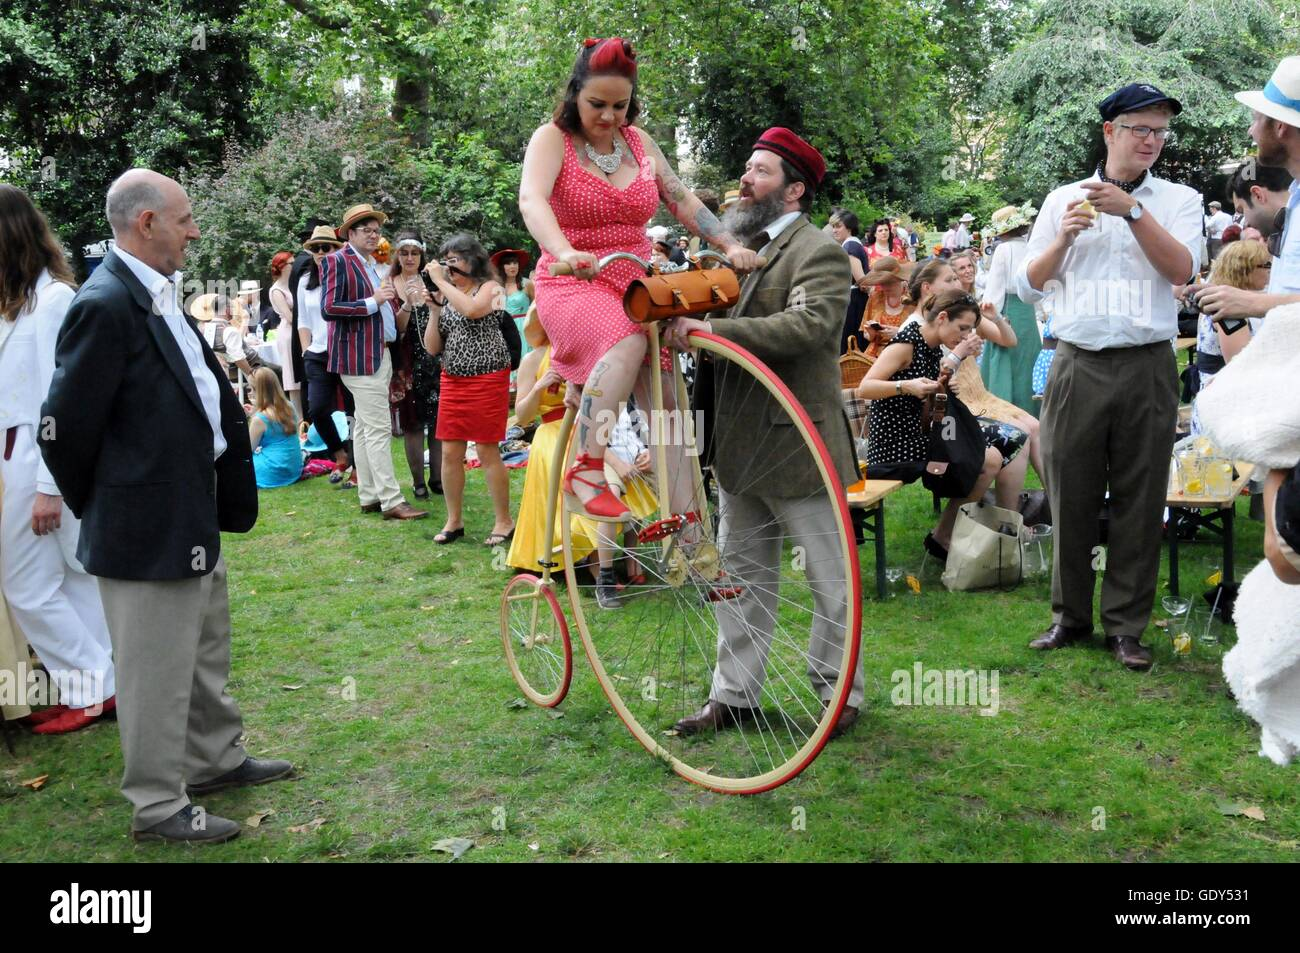 Victorian Bicycle Stock Photos Amp Victorian Bicycle Stock Images Alamy